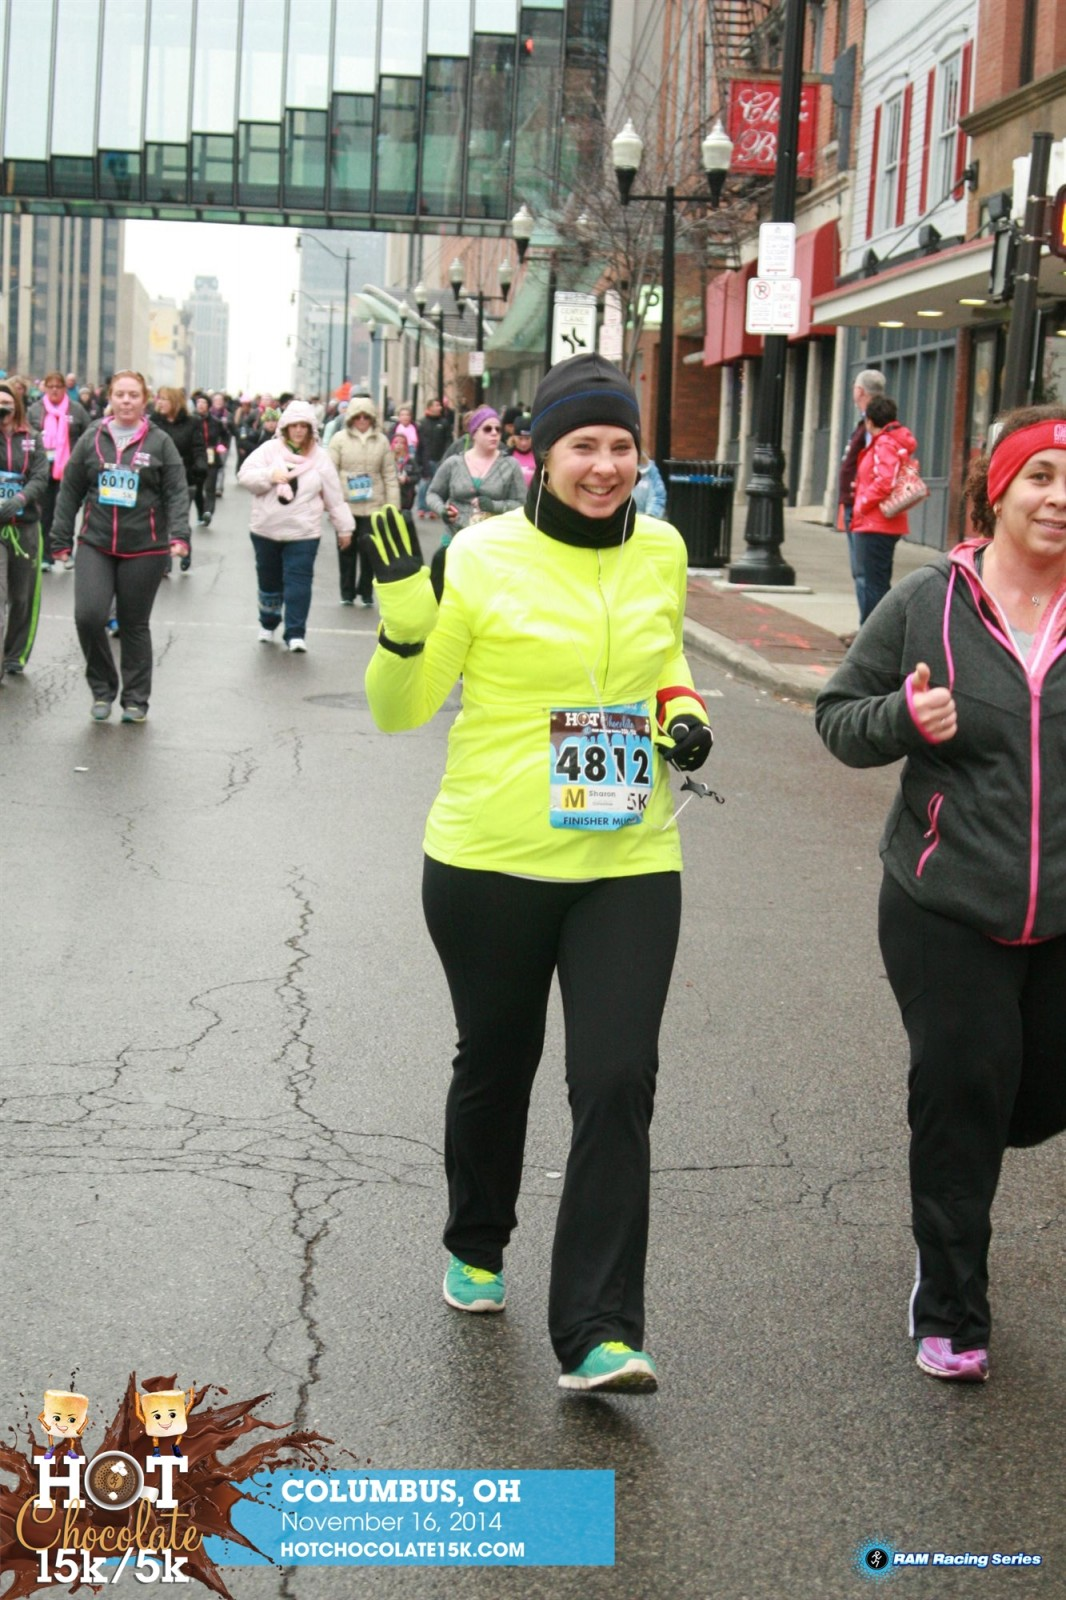 Running the Hot Chocolate 5K|Sharon the Moments Blog